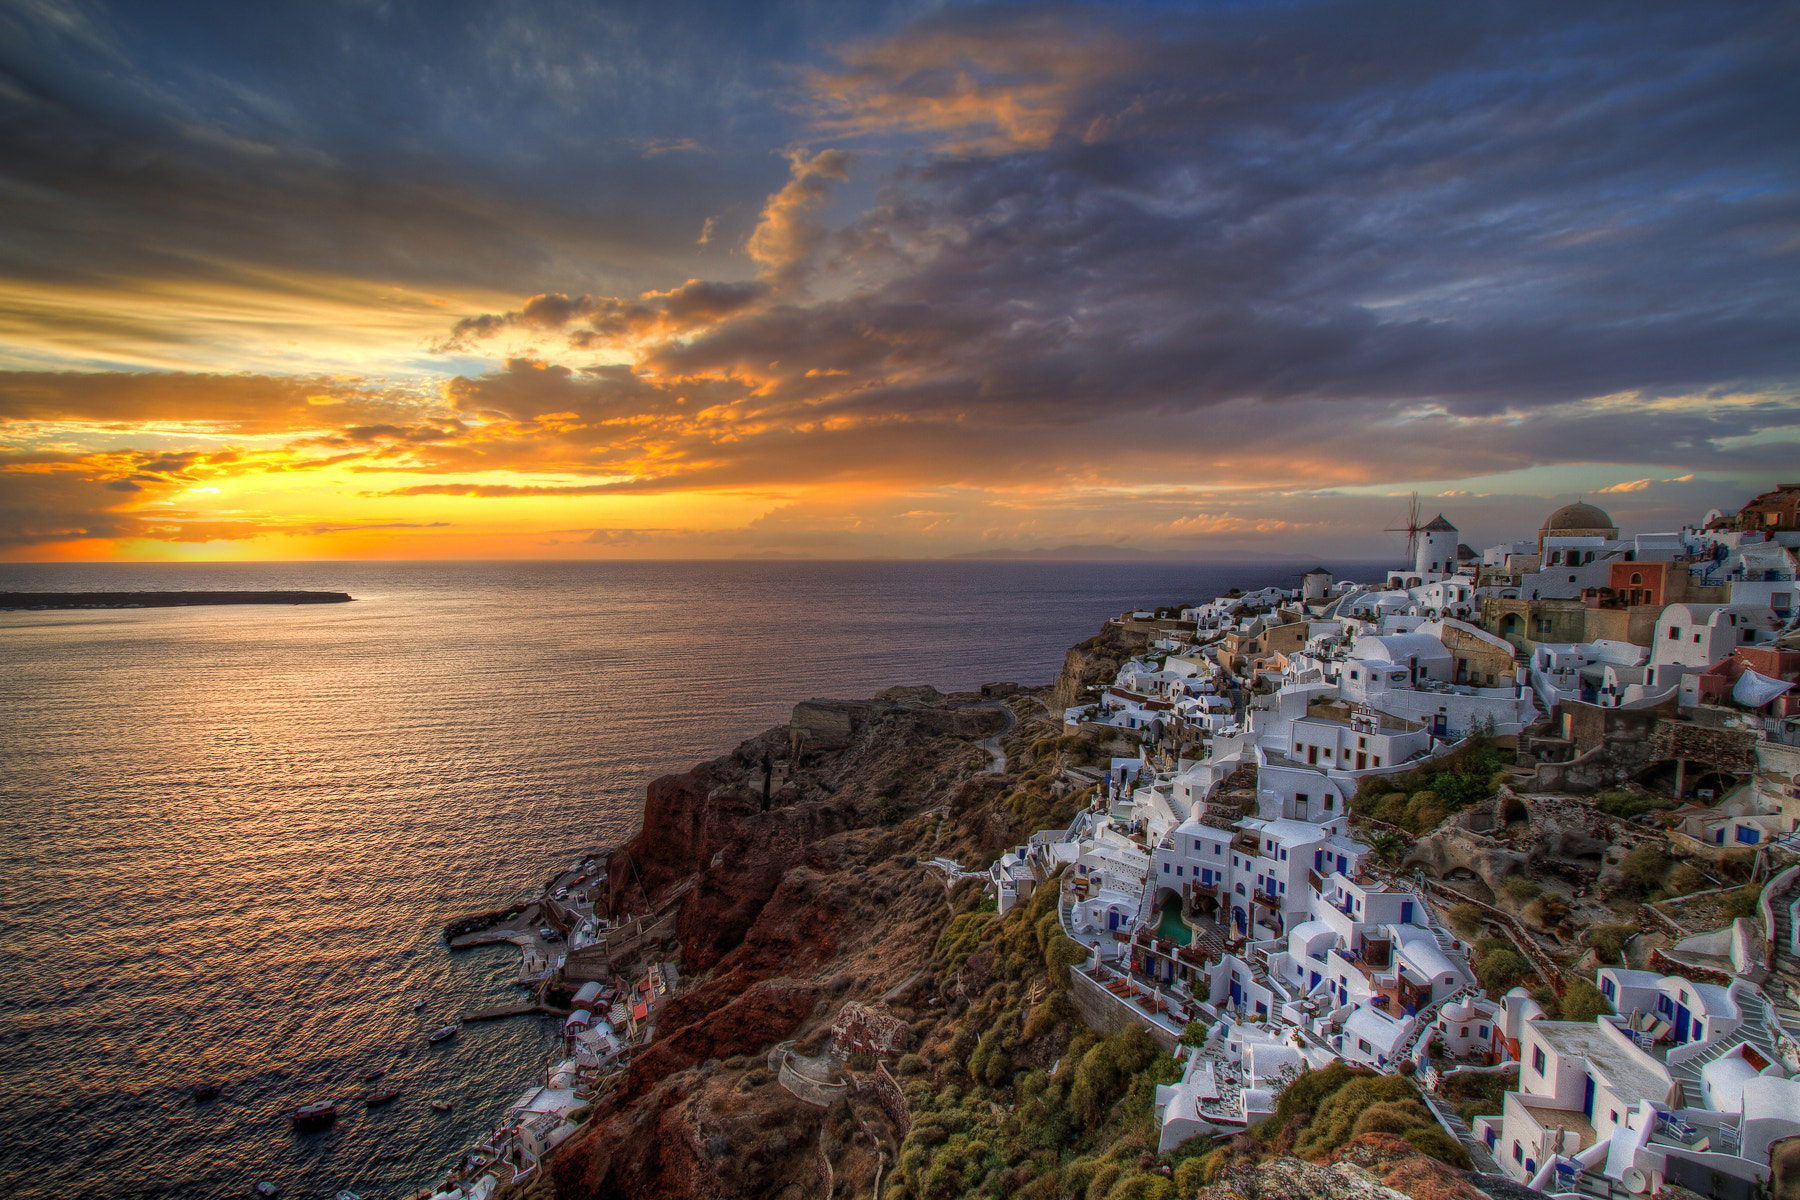 Photograph Sunset Over Oia by Nikola Totuhov on 500px